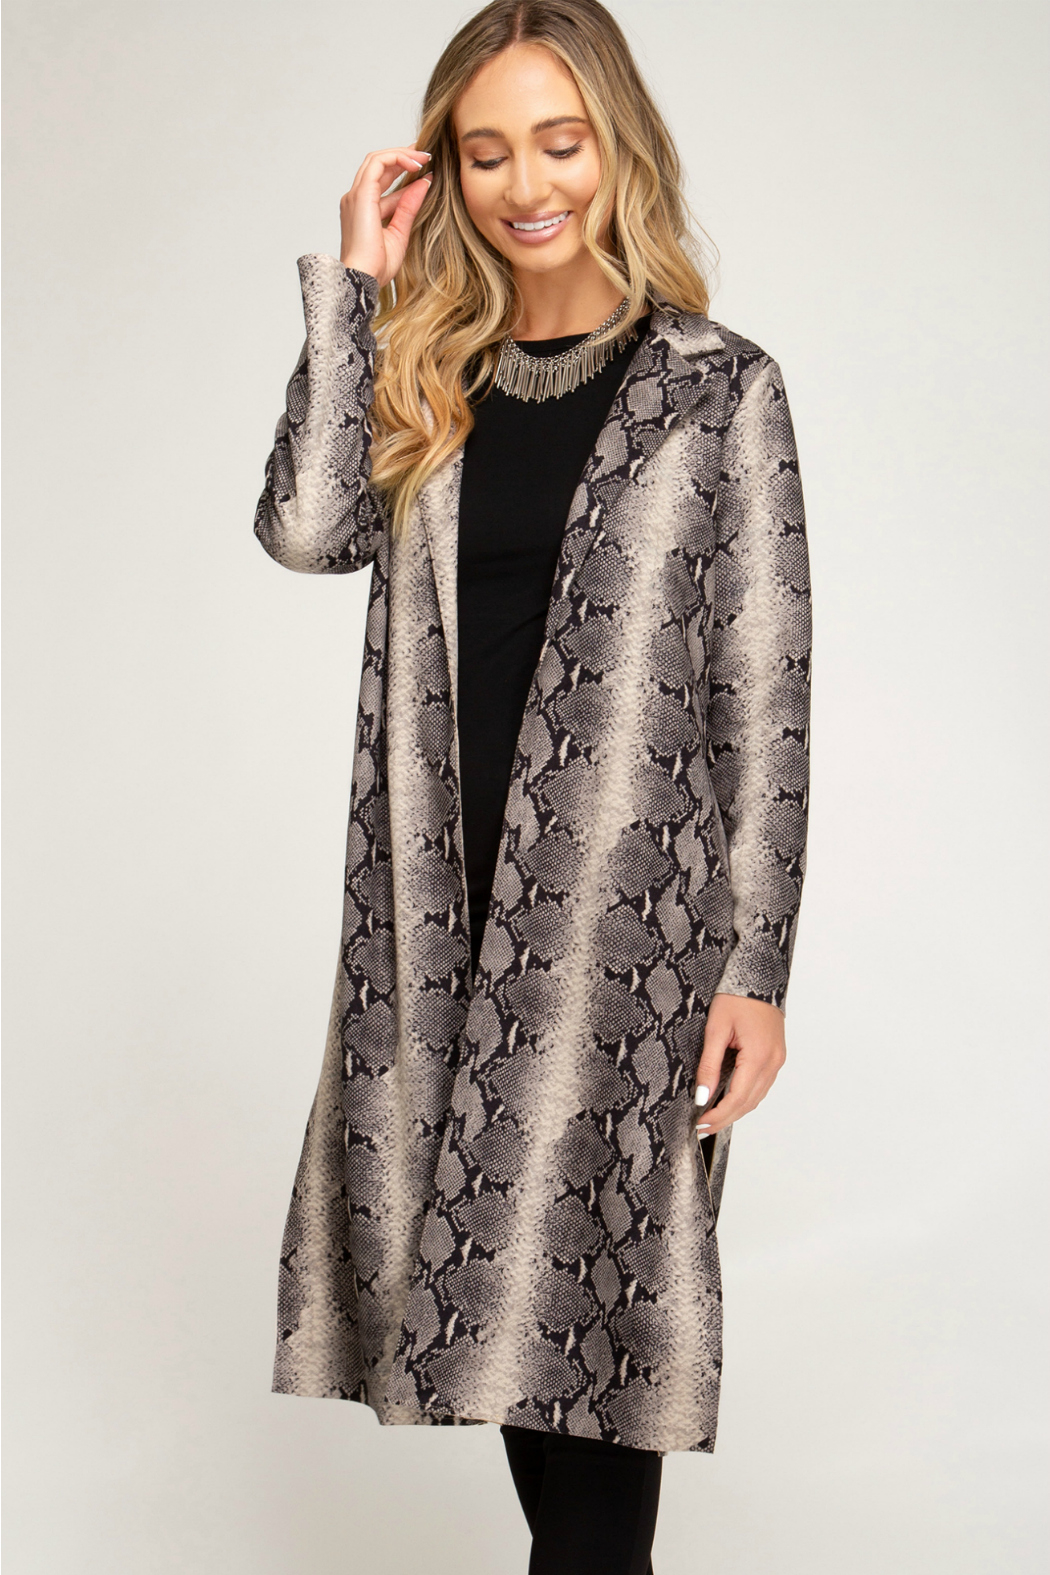 She + Sky Animal Print Suede Duster - Main Image